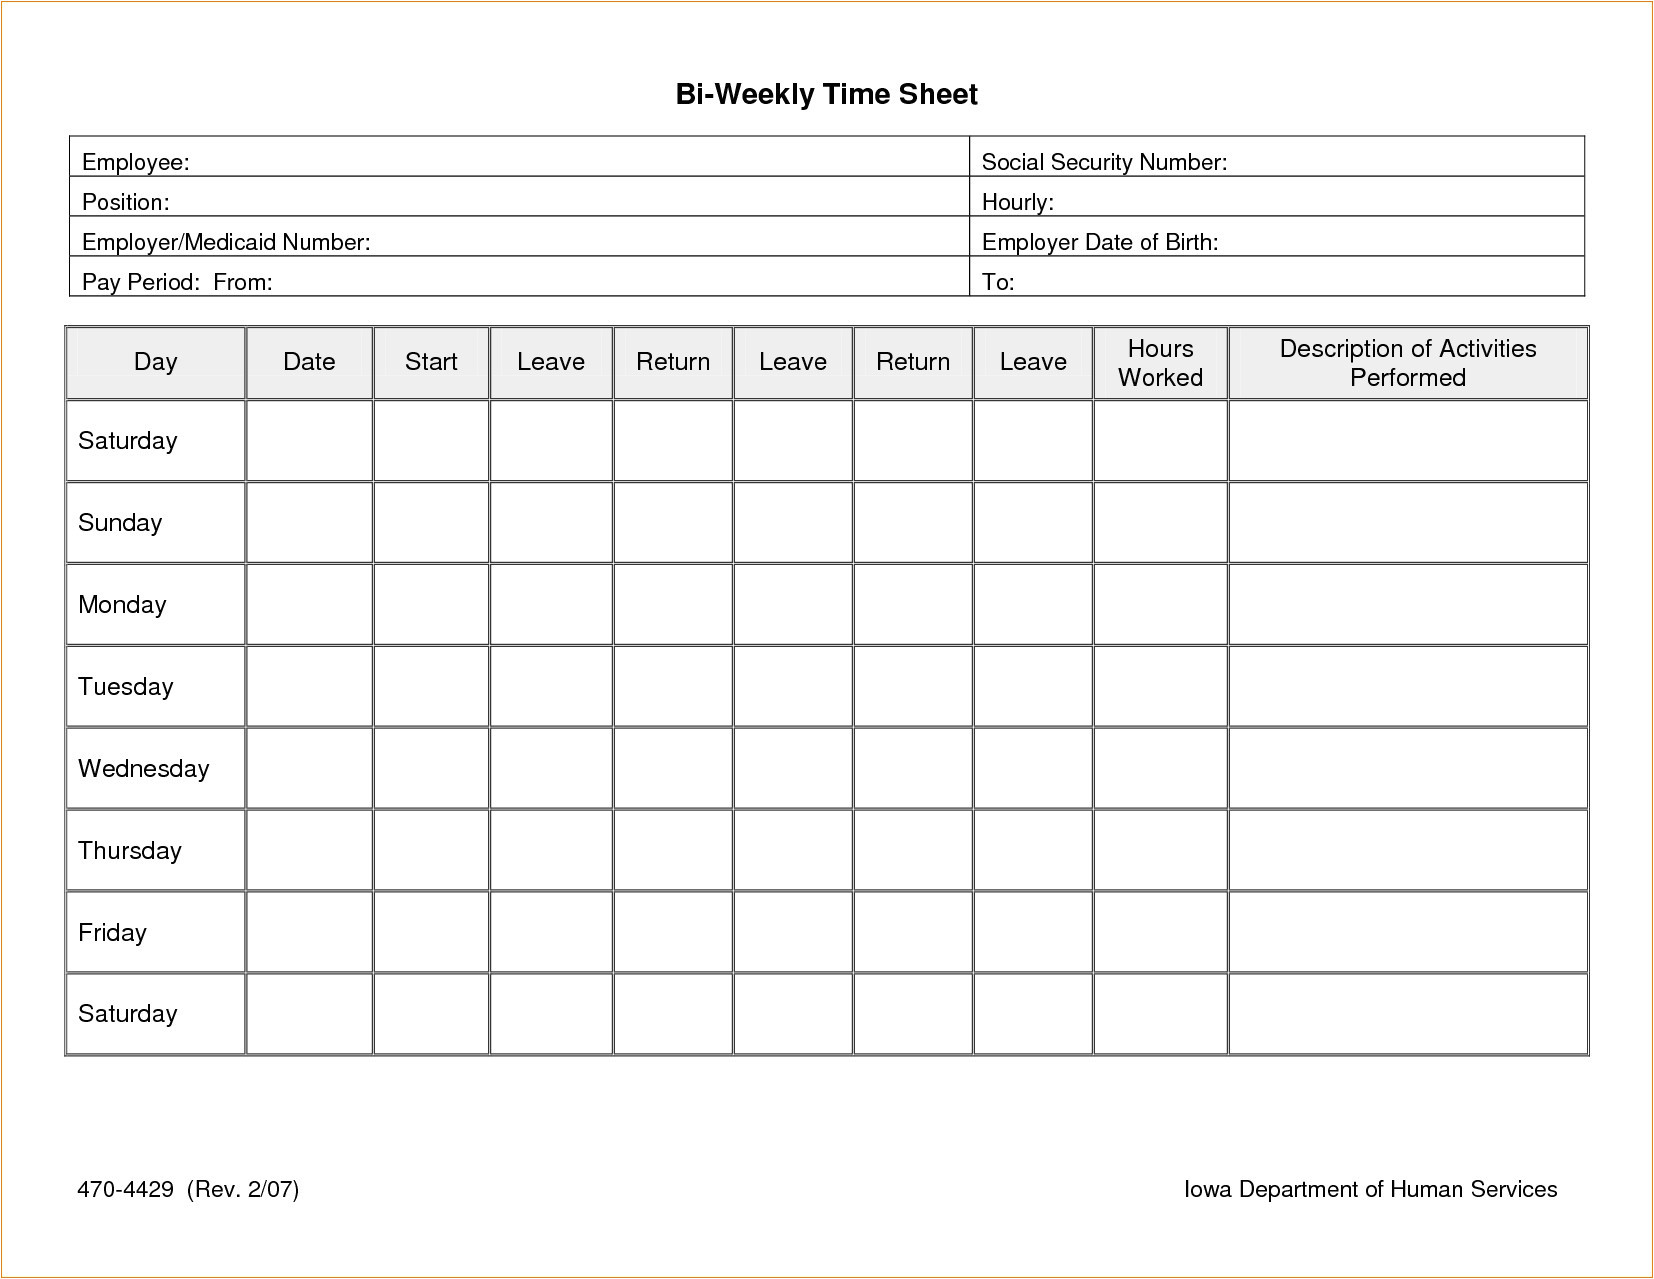 xl spreadsheet best of weekly time sheets template best work hours calculator excel